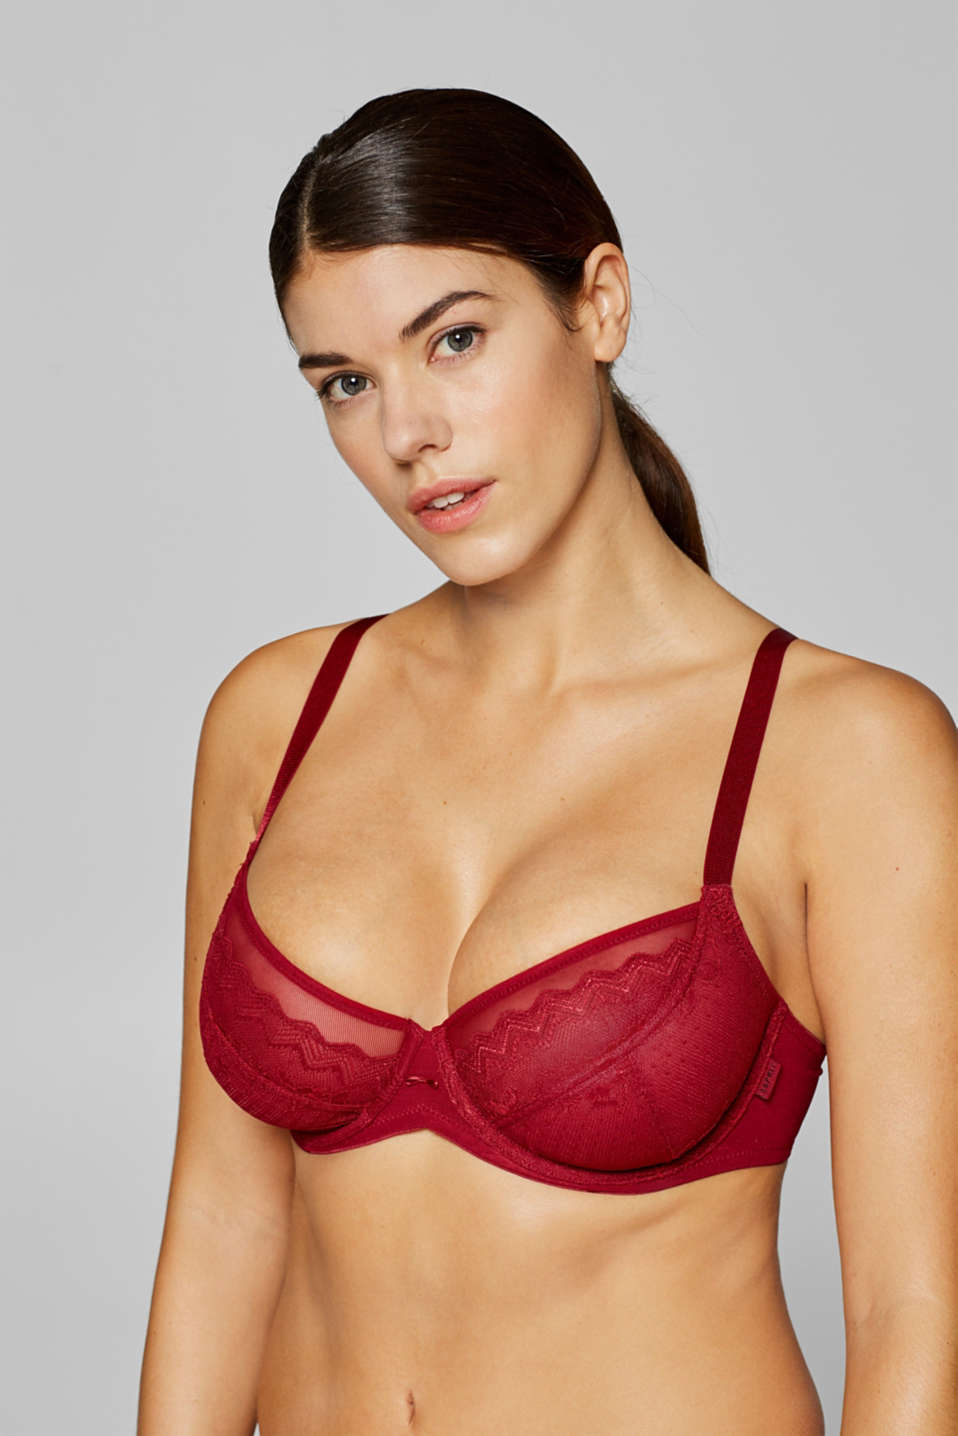 Esprit - Unpadded underwire lace bra for large cup sizes